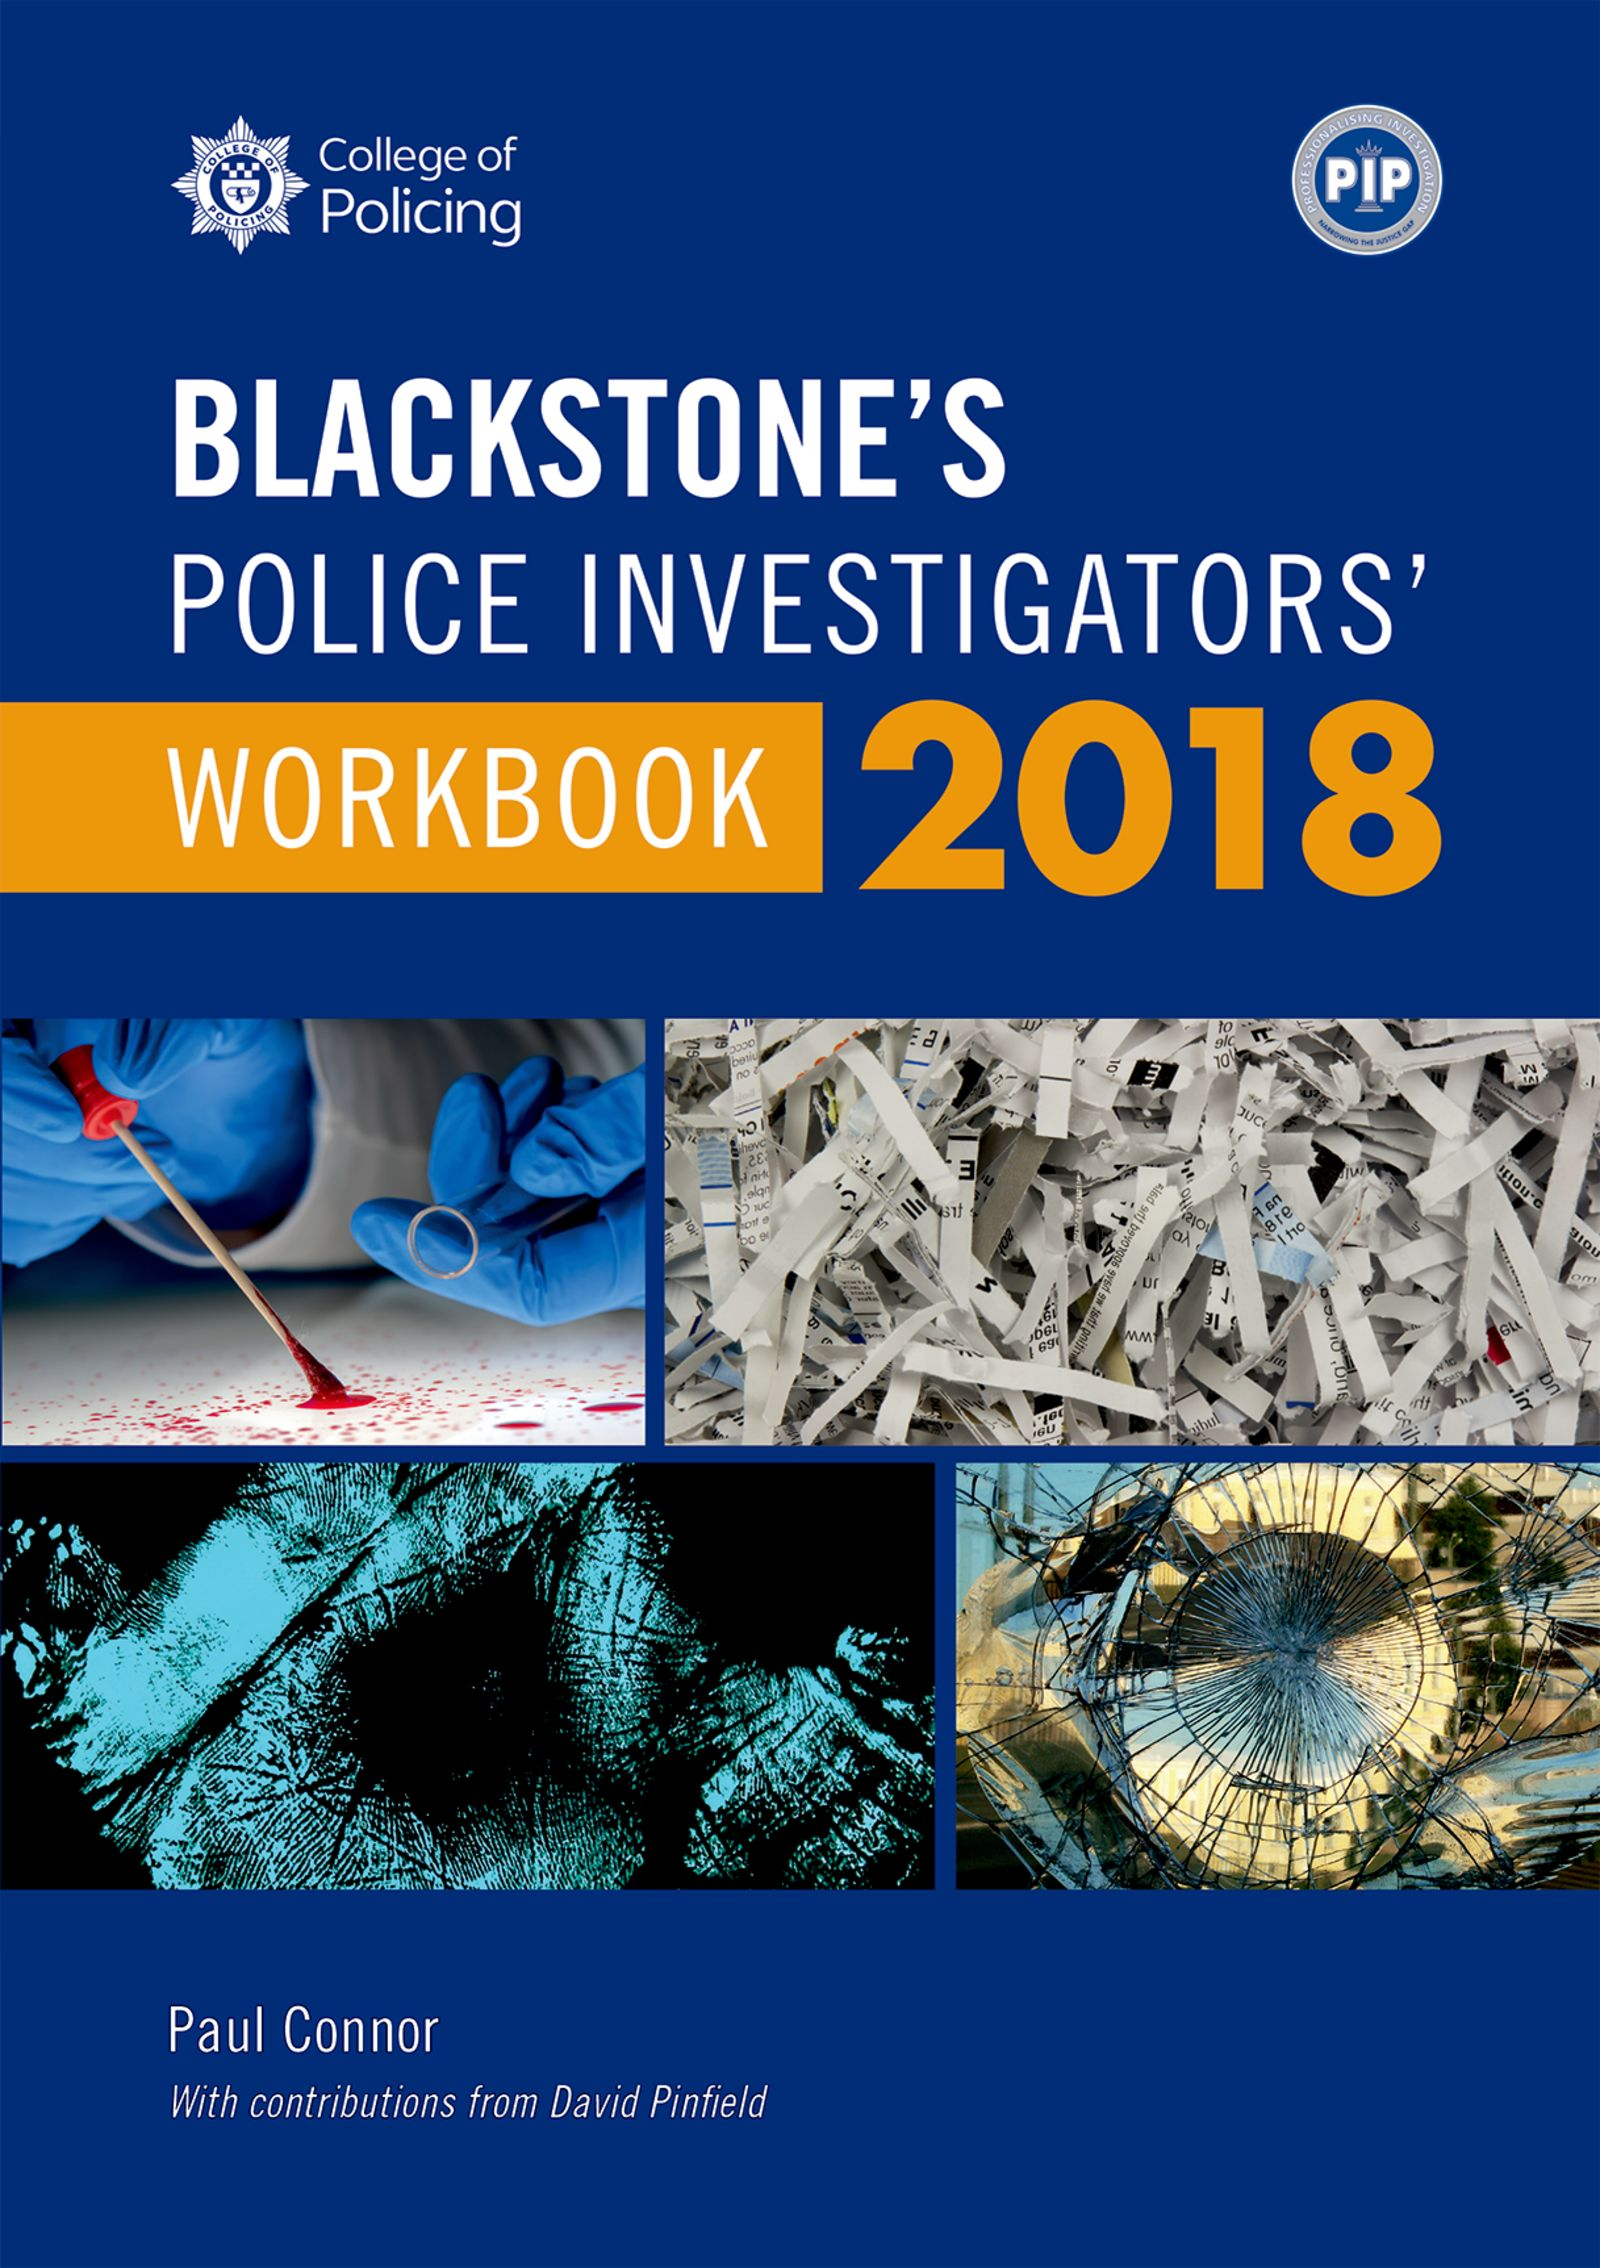 Blackstone's Police Investigators' Workbook 2018$